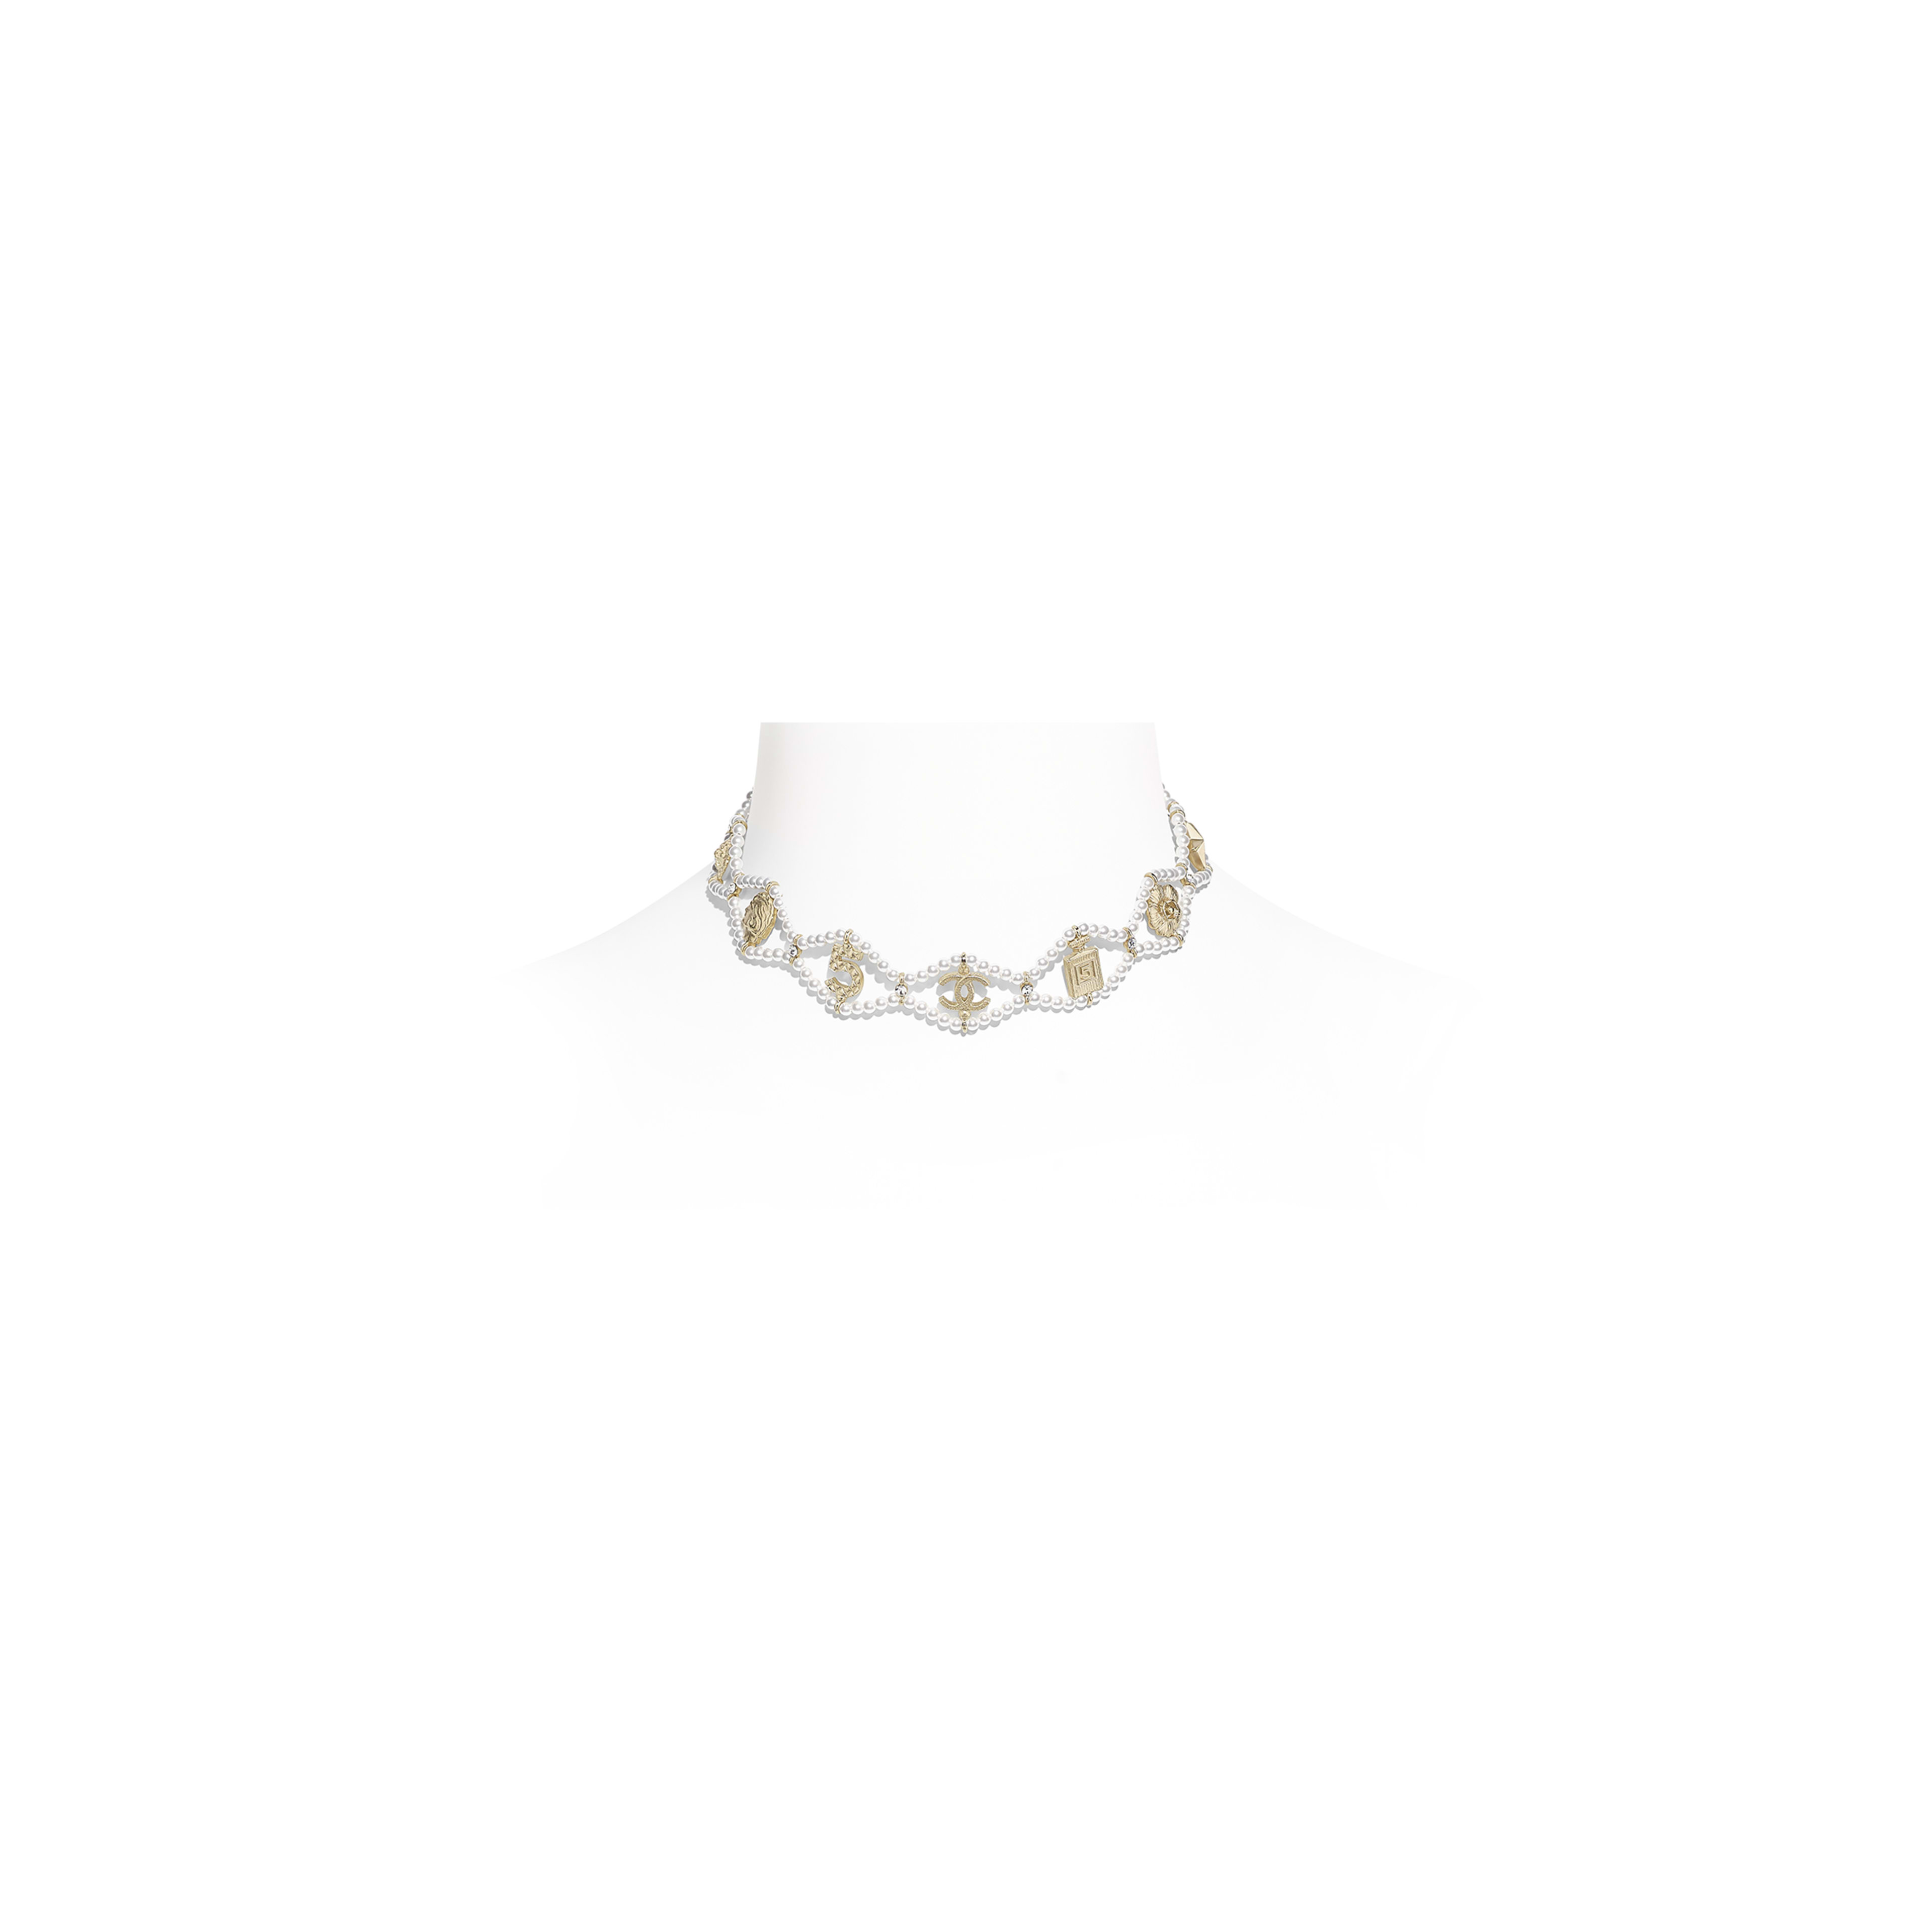 Choker - Gold, Pearly White & Crystal - Metal, Glass Pearls & Diamantés - Default view - see full sized version